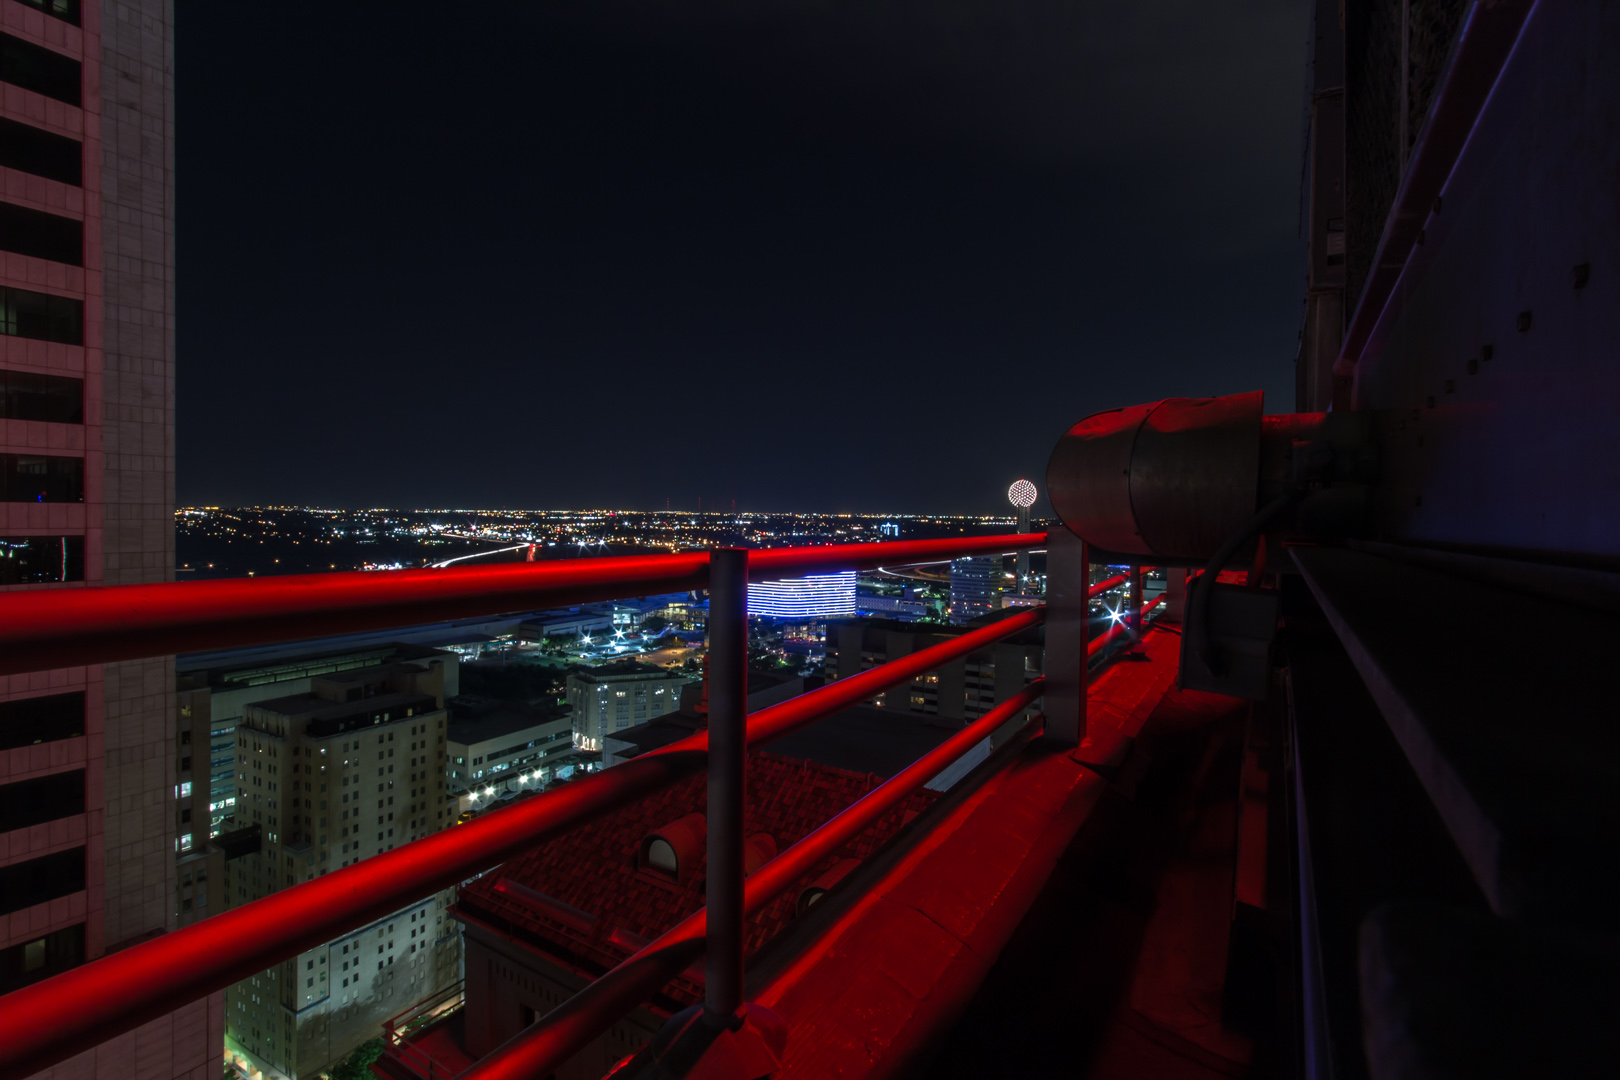 Dallas Rooftopping Pegasus U S A Finding Midnight